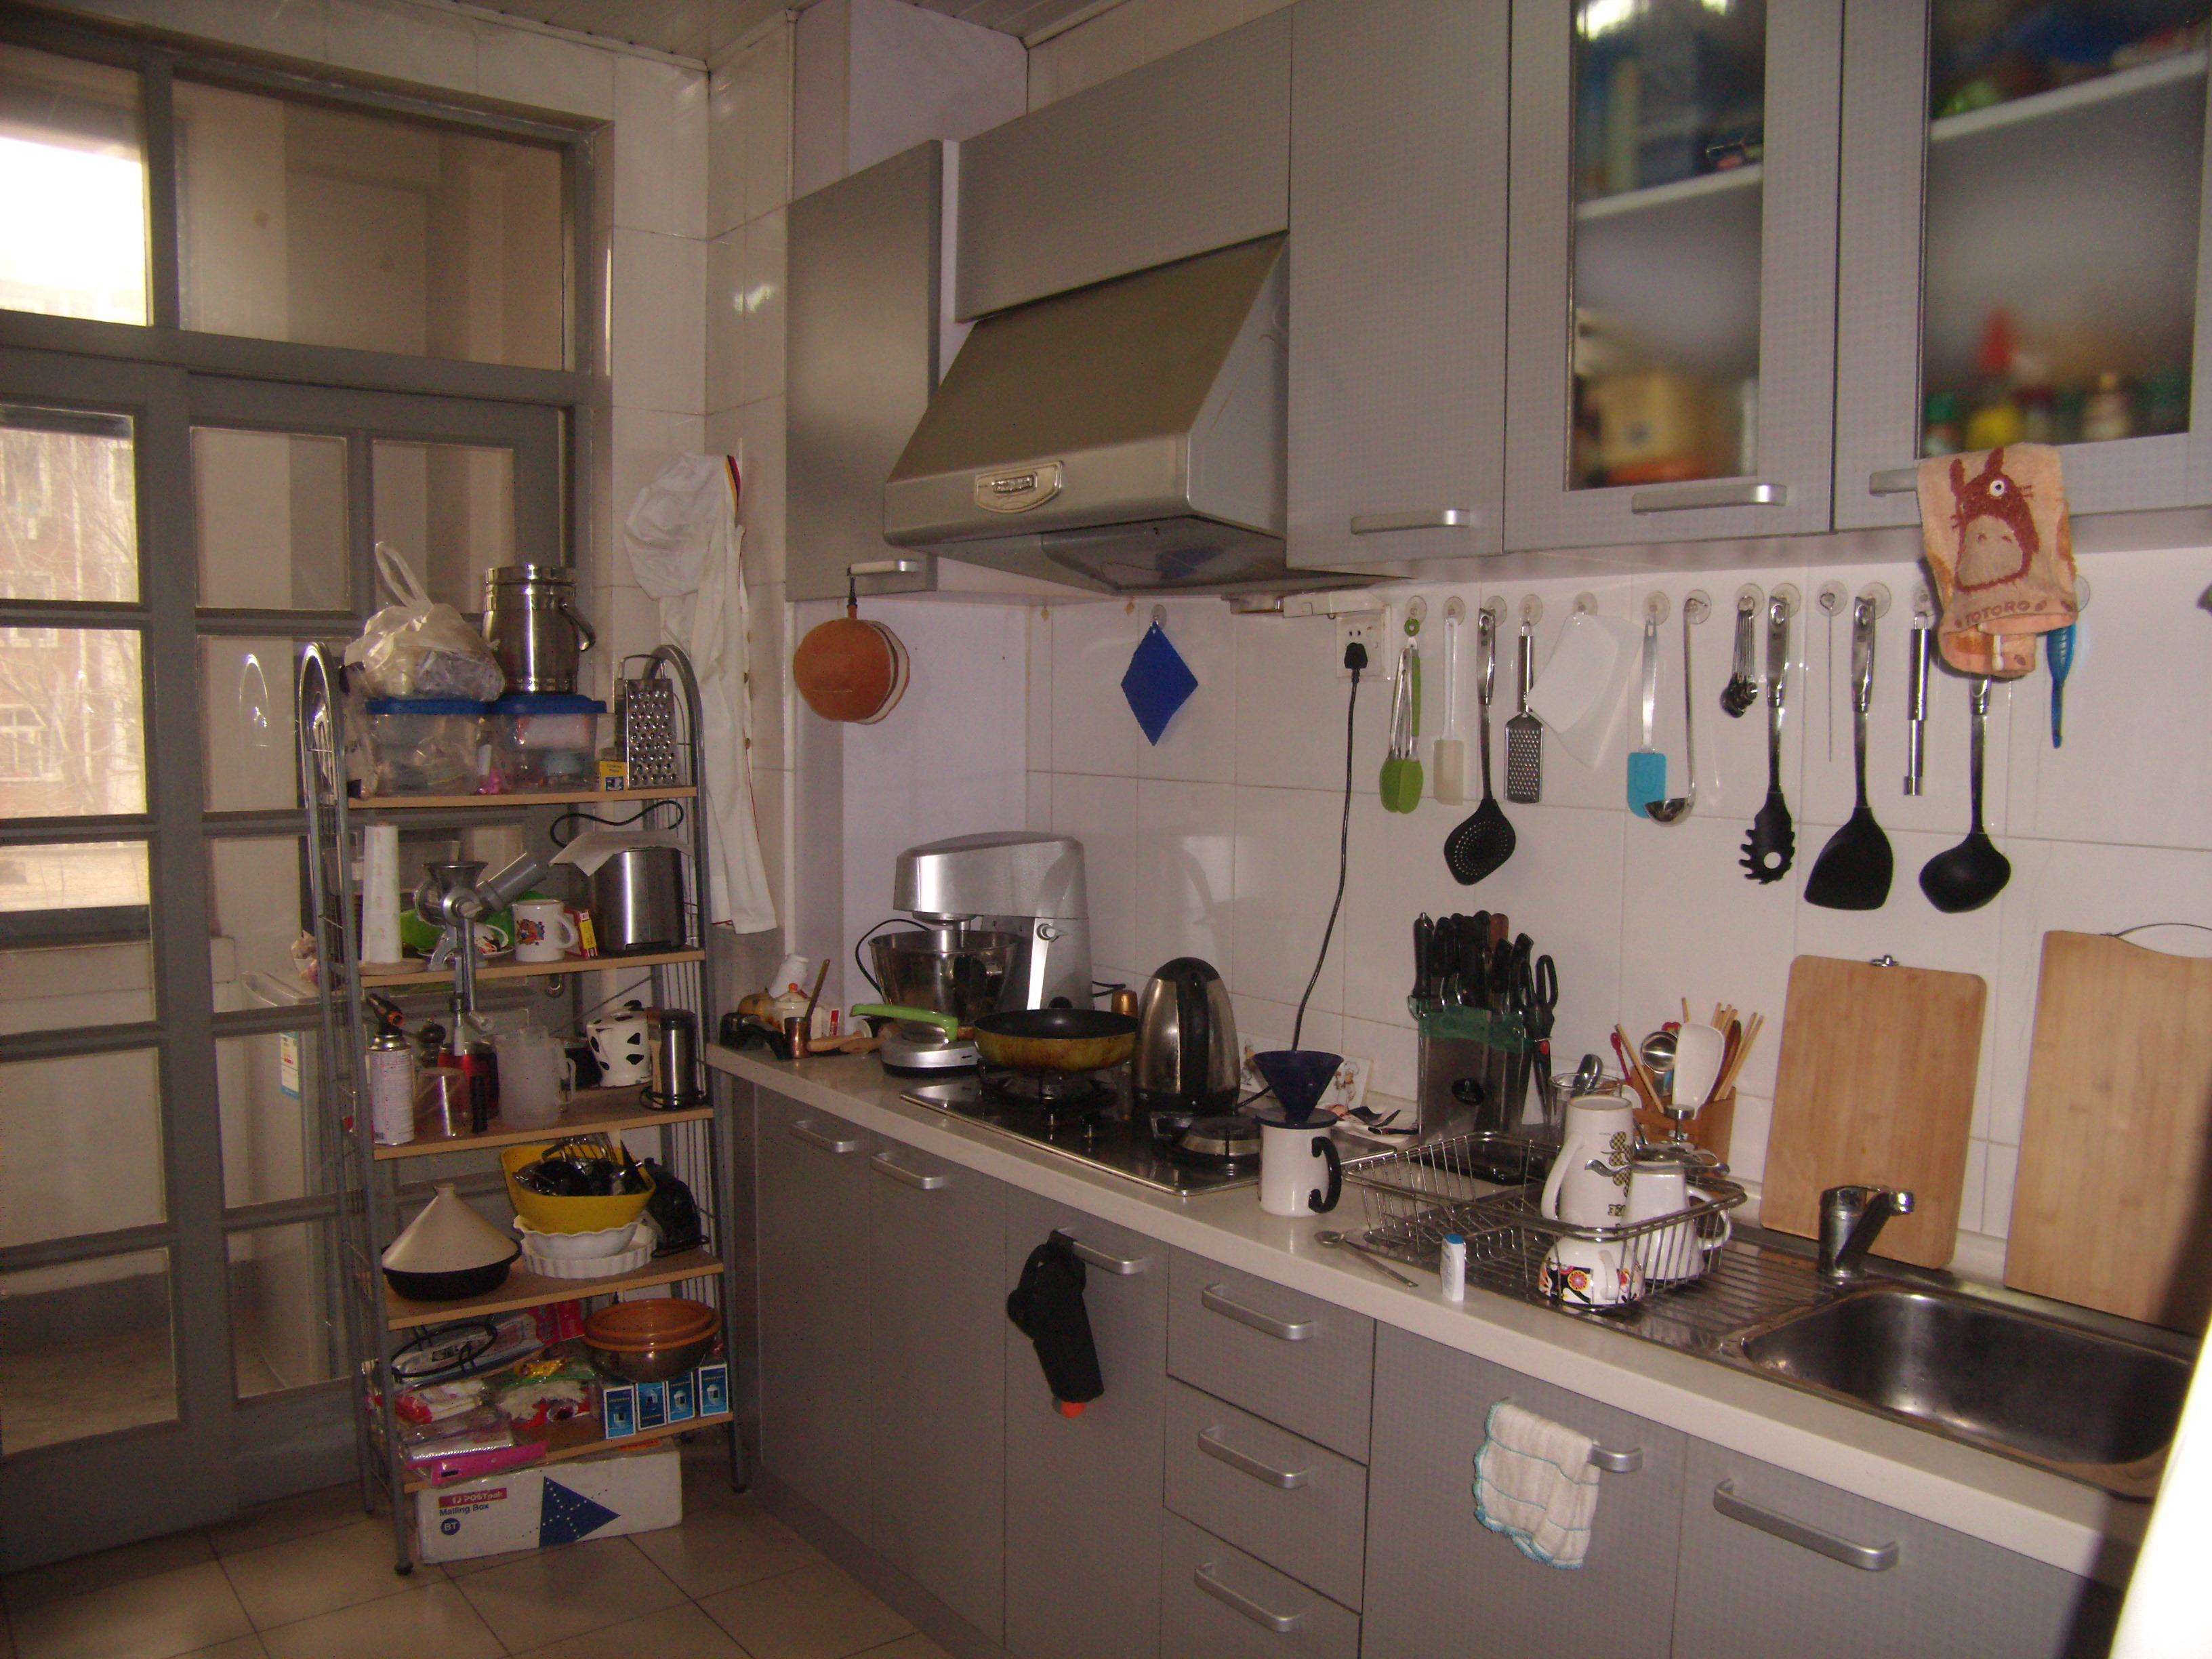 Kitchen Design Courses Near Me Beyond The Classroom Susan Blumberg Kason